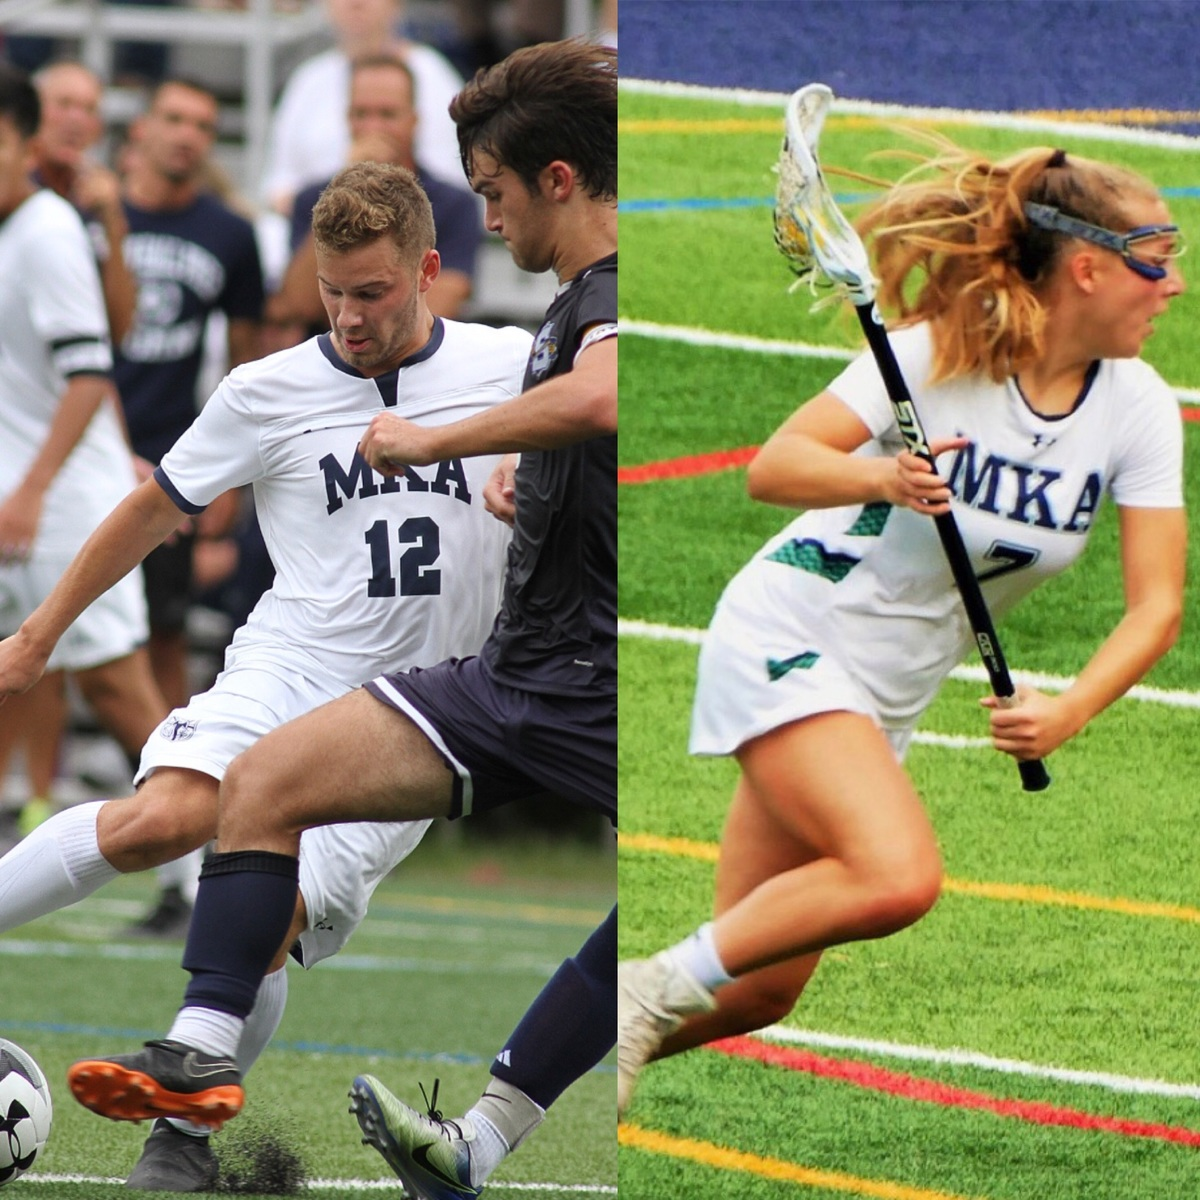 Dylan Ladda '19 and Lily Pryor '19 Named Essex County Scholar Athletes!